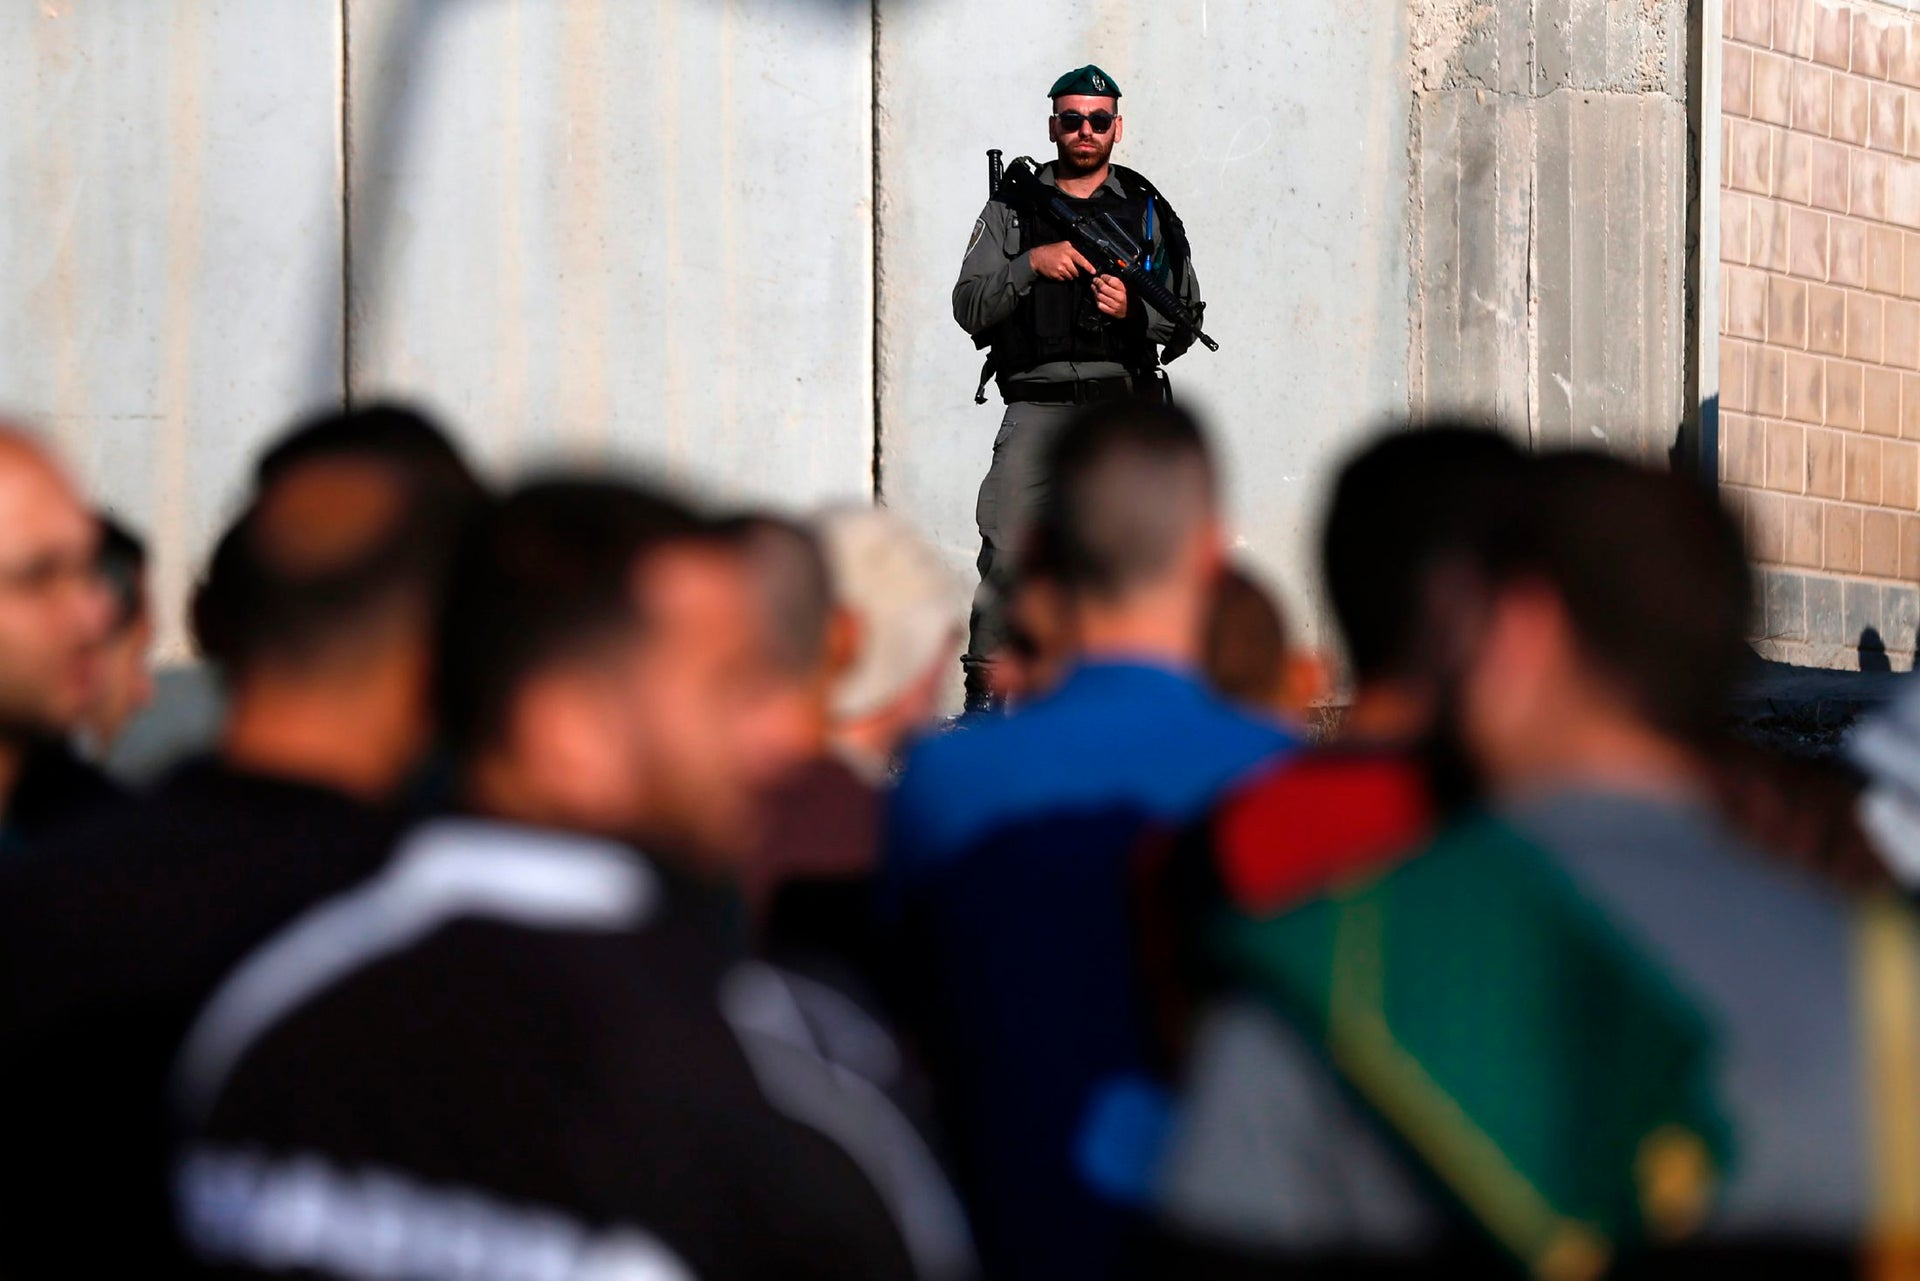 Israeli security forces stand guard as Palestinians wait to cross the Qalandiyah checkpoint between the West Bank city of Ramallah and Jerusalem, June 2, 2017.